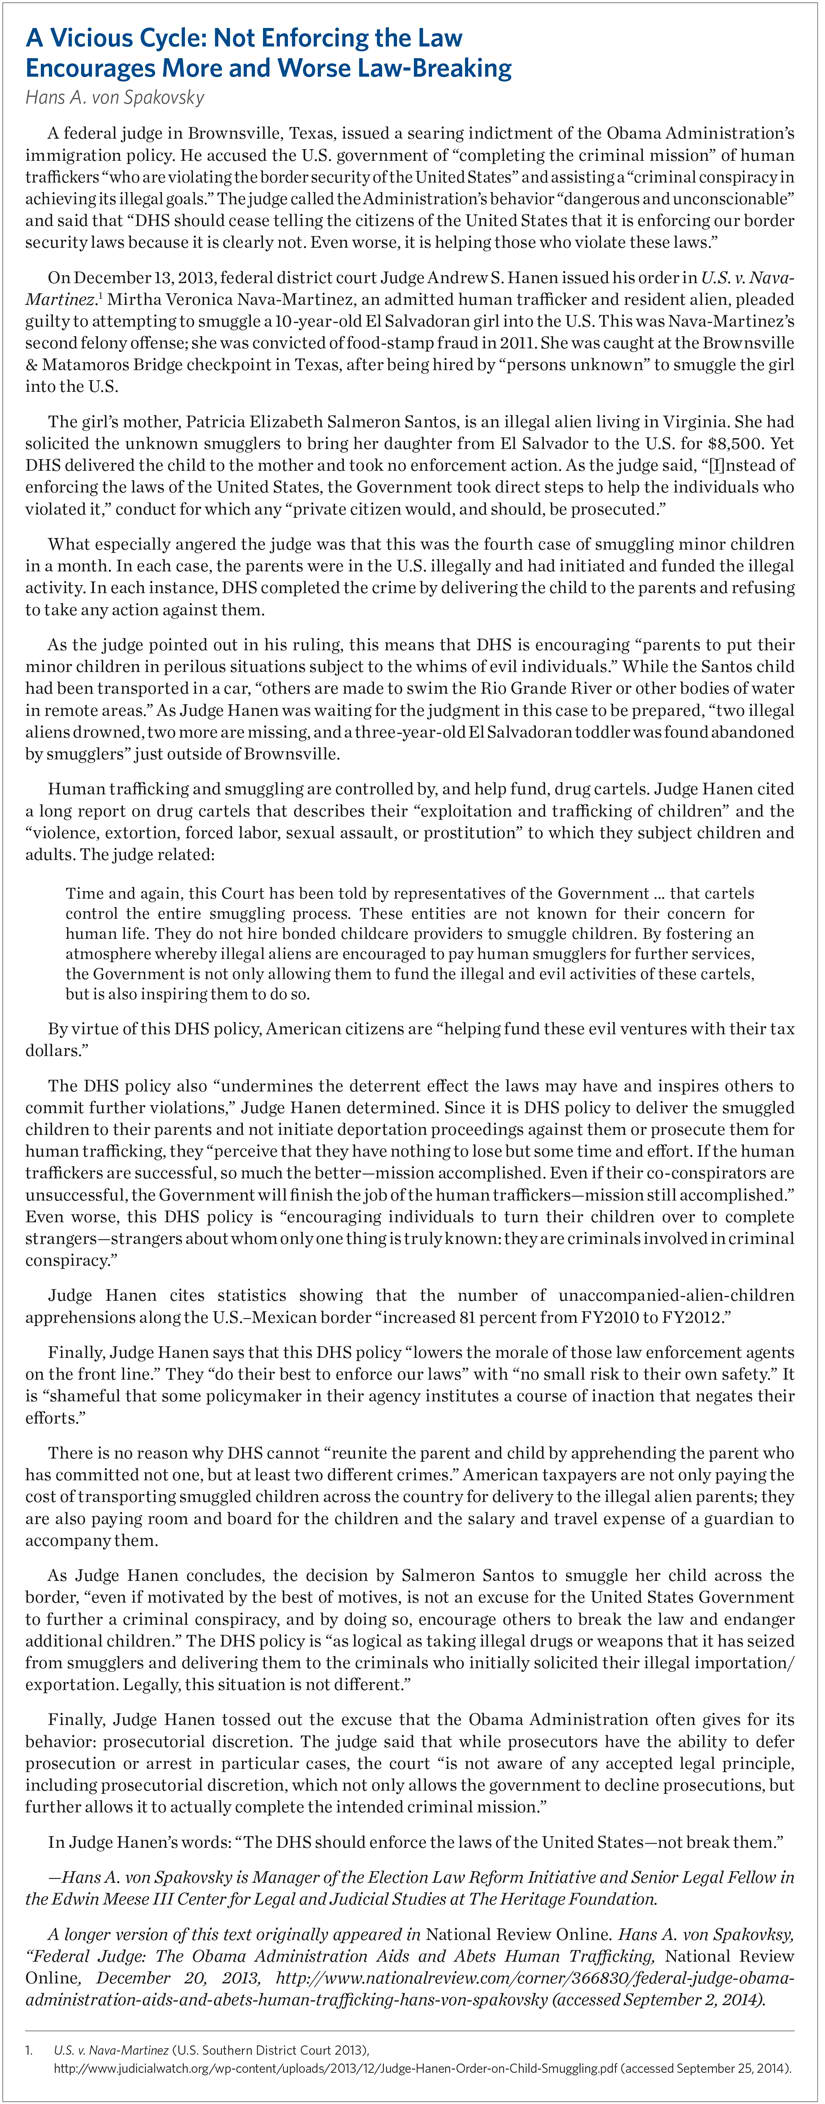 fdr research paper On january 6, 1941, president franklin delano roosevelt gave his now-famous  speech on four freedoms essential to democracy and human.